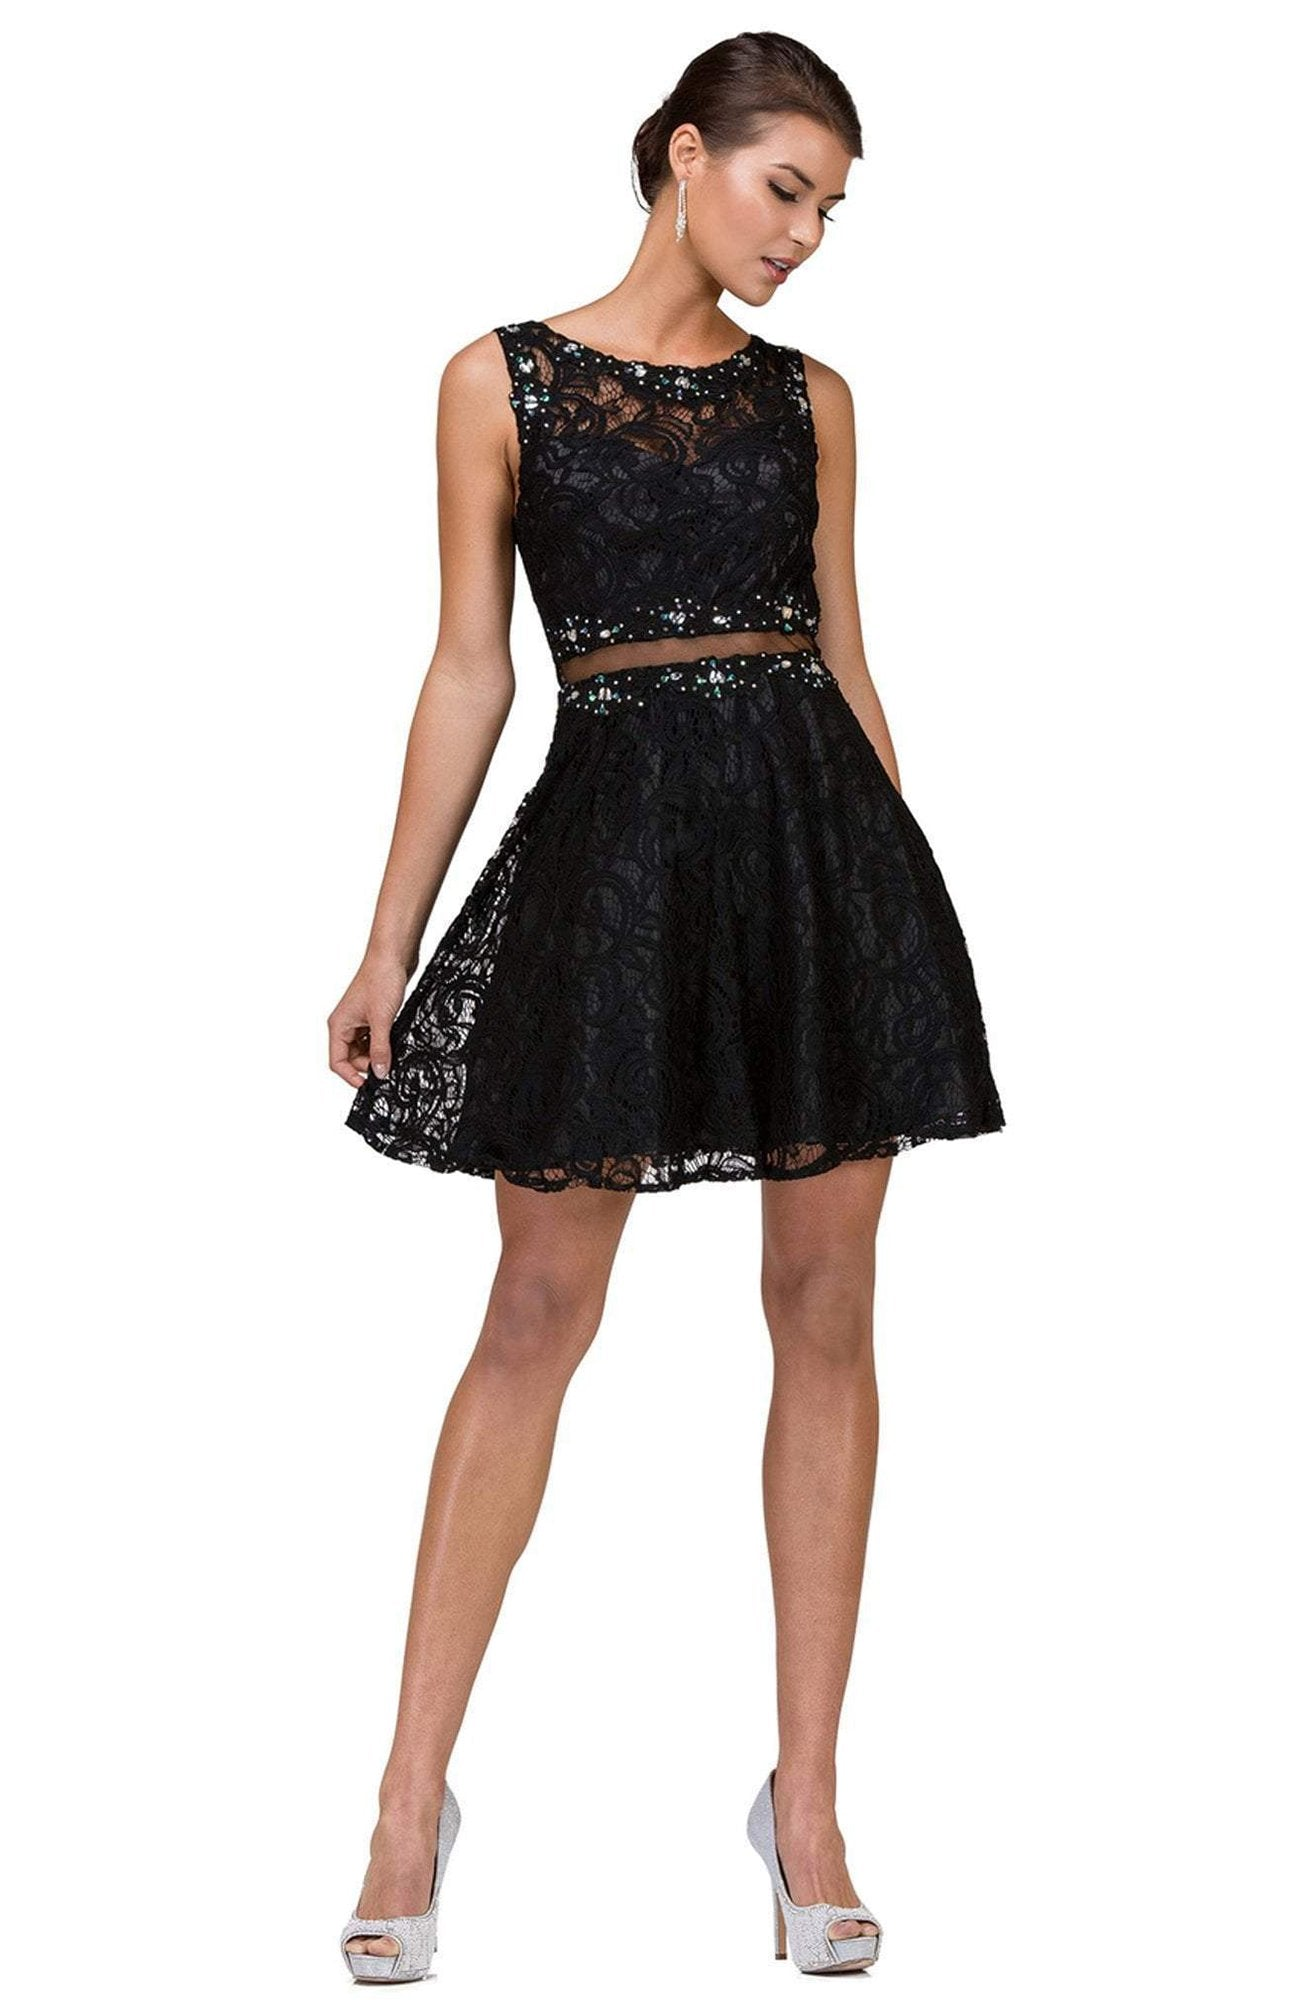 Dancing Queen Illusion Midriff Jeweled Lace A-Line Dress - 1 pc Black In Size S Available In Black